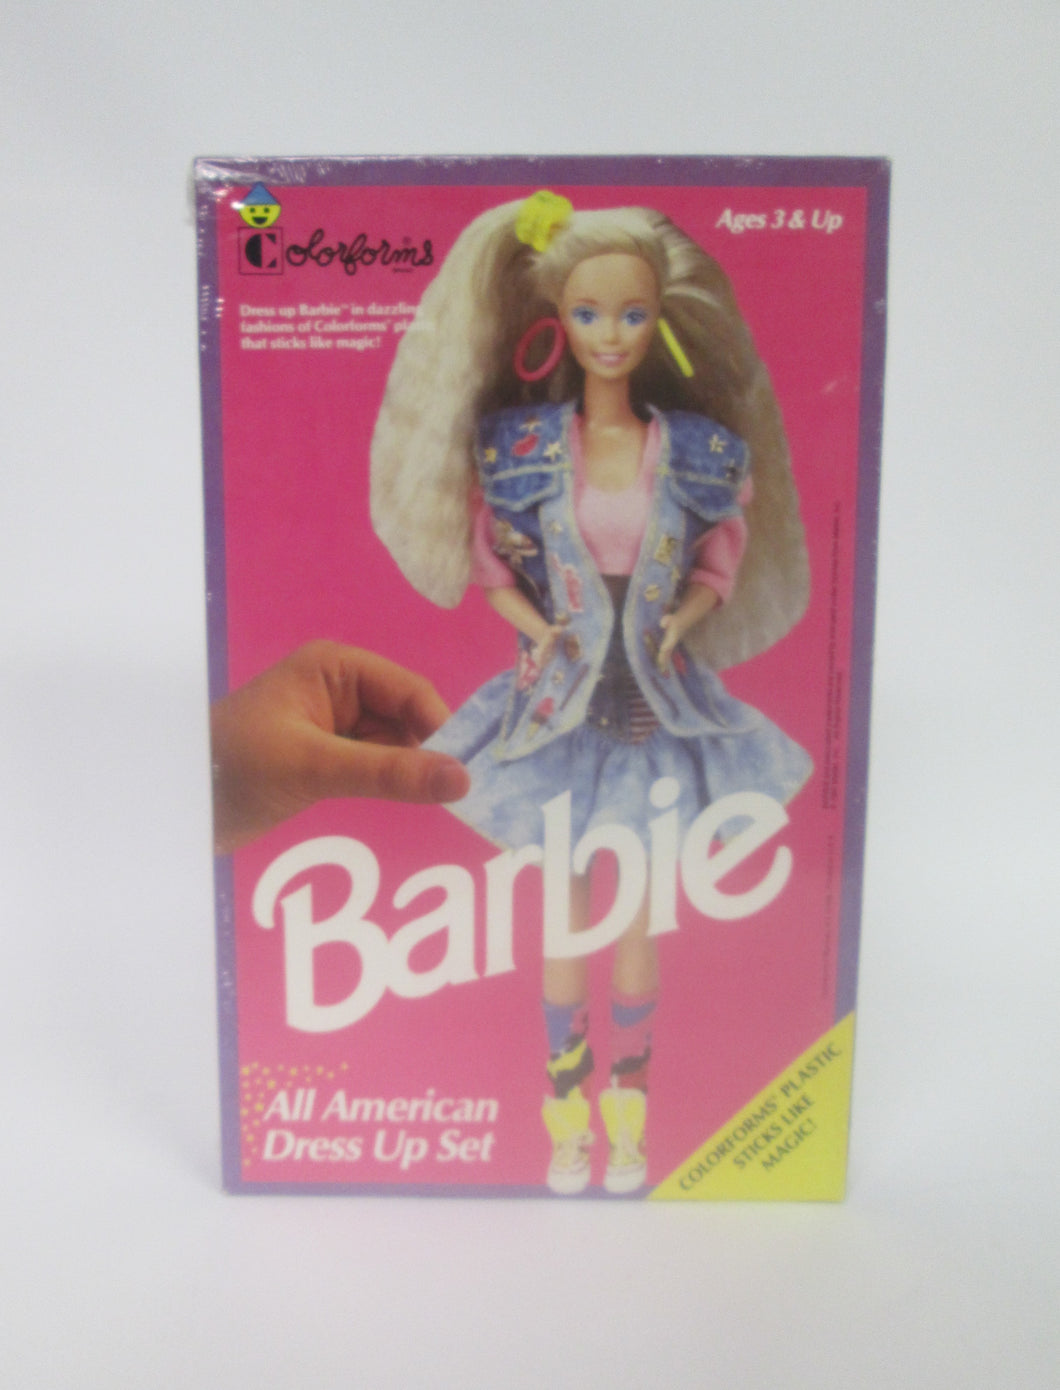 Barbie All American Dress Up Set Colorforms